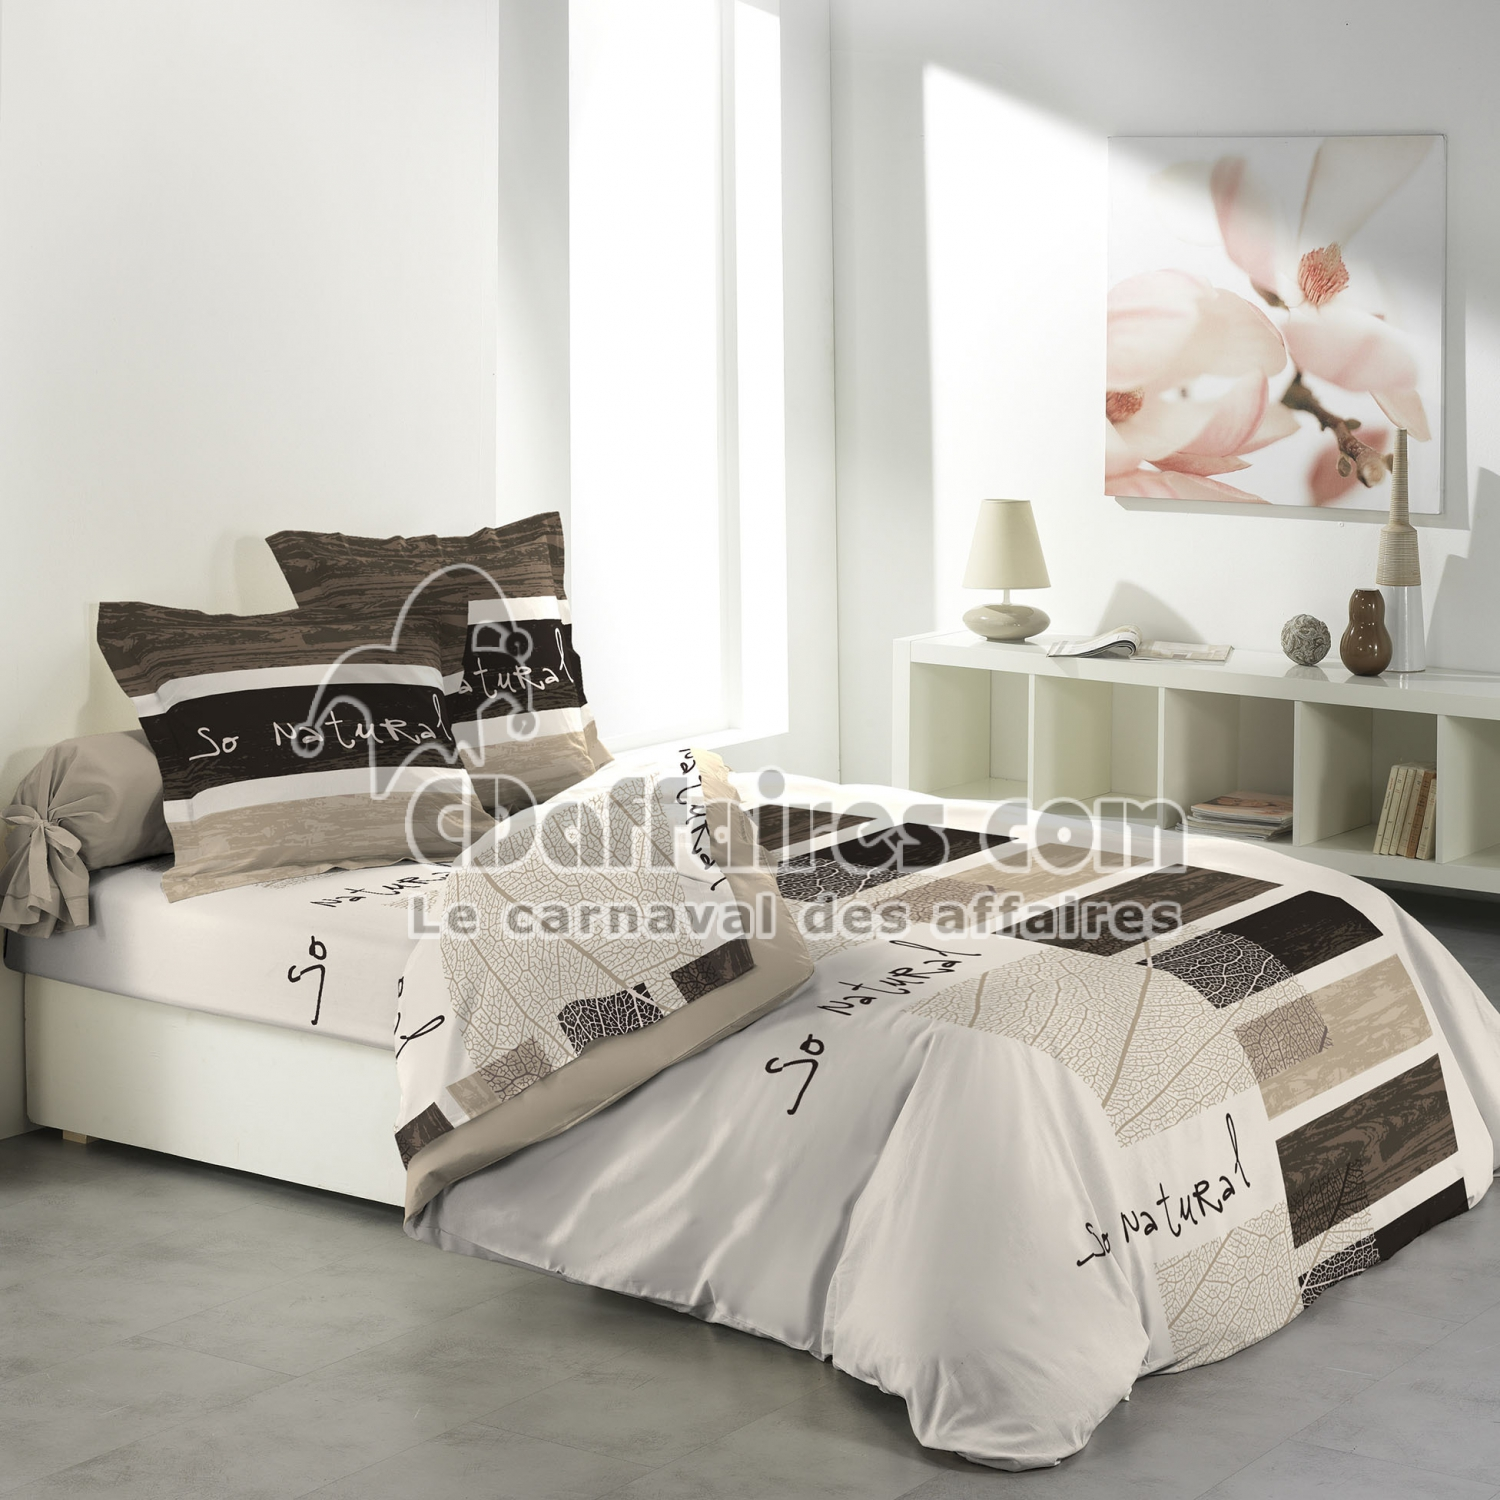 parure couette drap cdaffaires. Black Bedroom Furniture Sets. Home Design Ideas